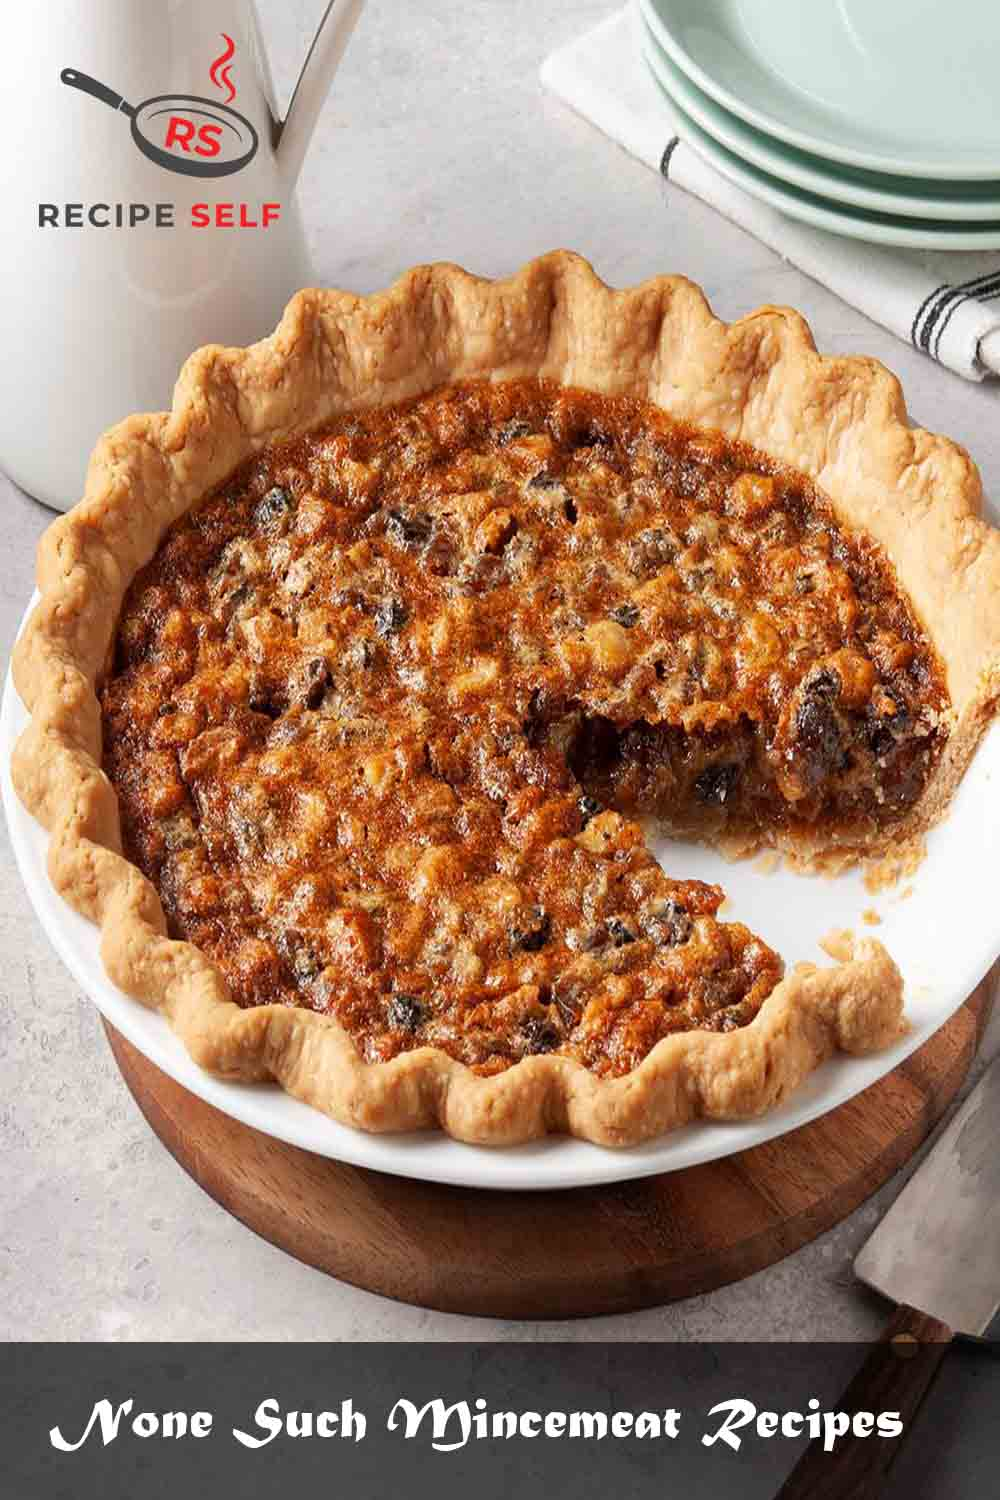 None Such Mincemeat Recipes